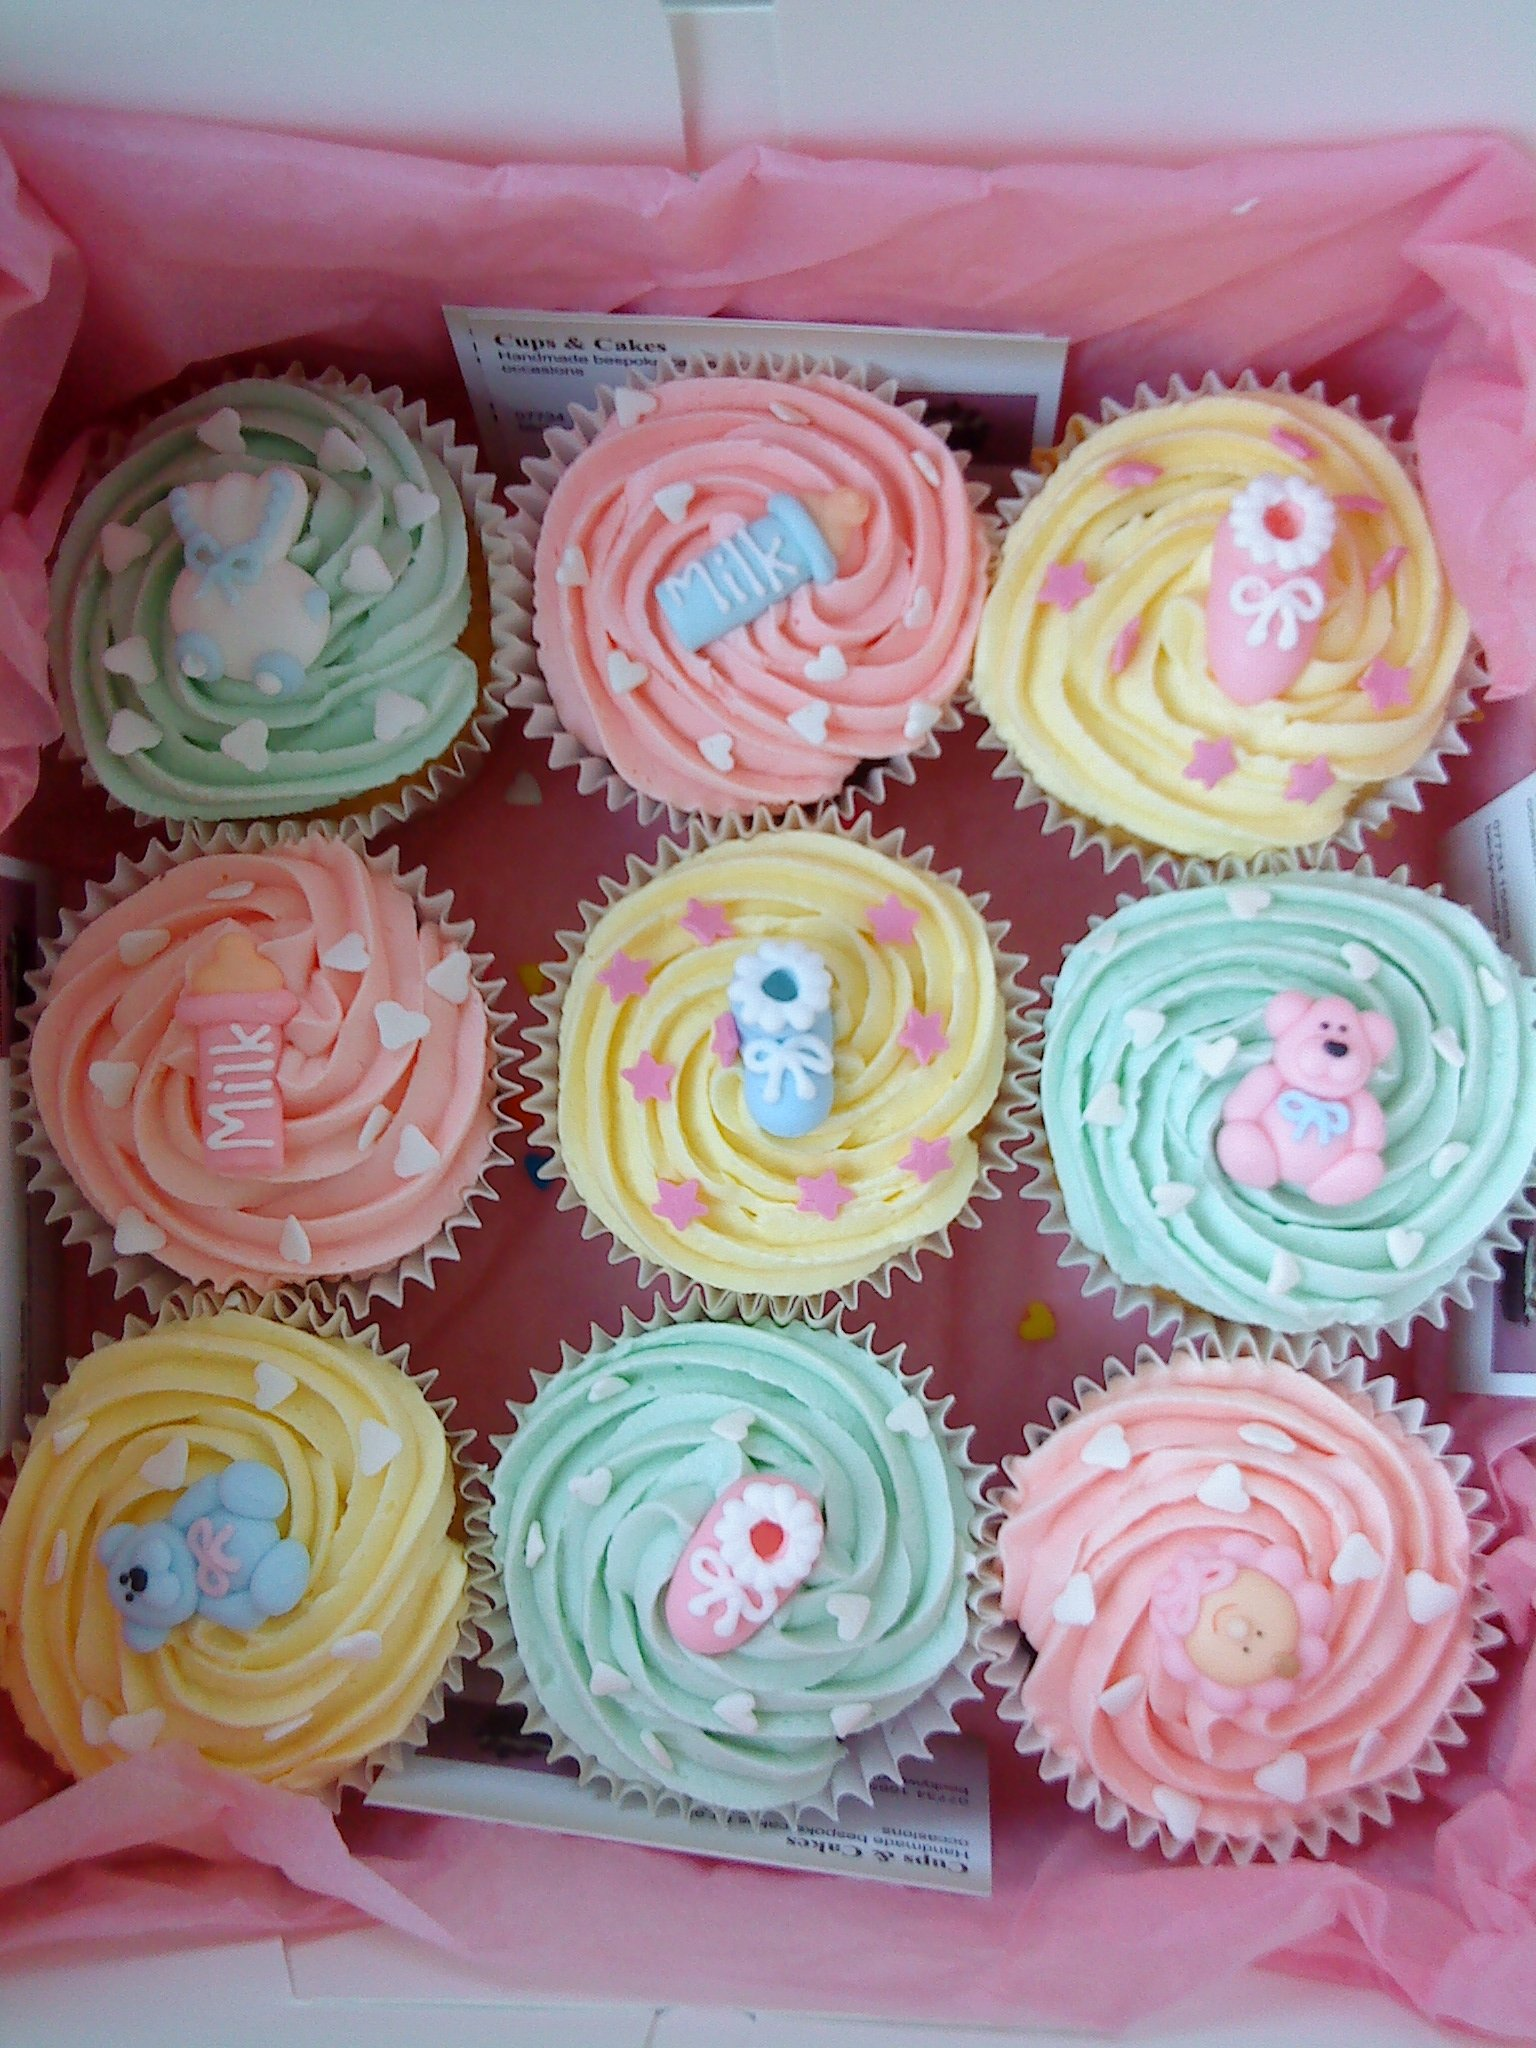 10 Spectacular Baby Shower Cake Decorating Ideas baby shower cupcake decorating ideas omega center ideas for baby 2020